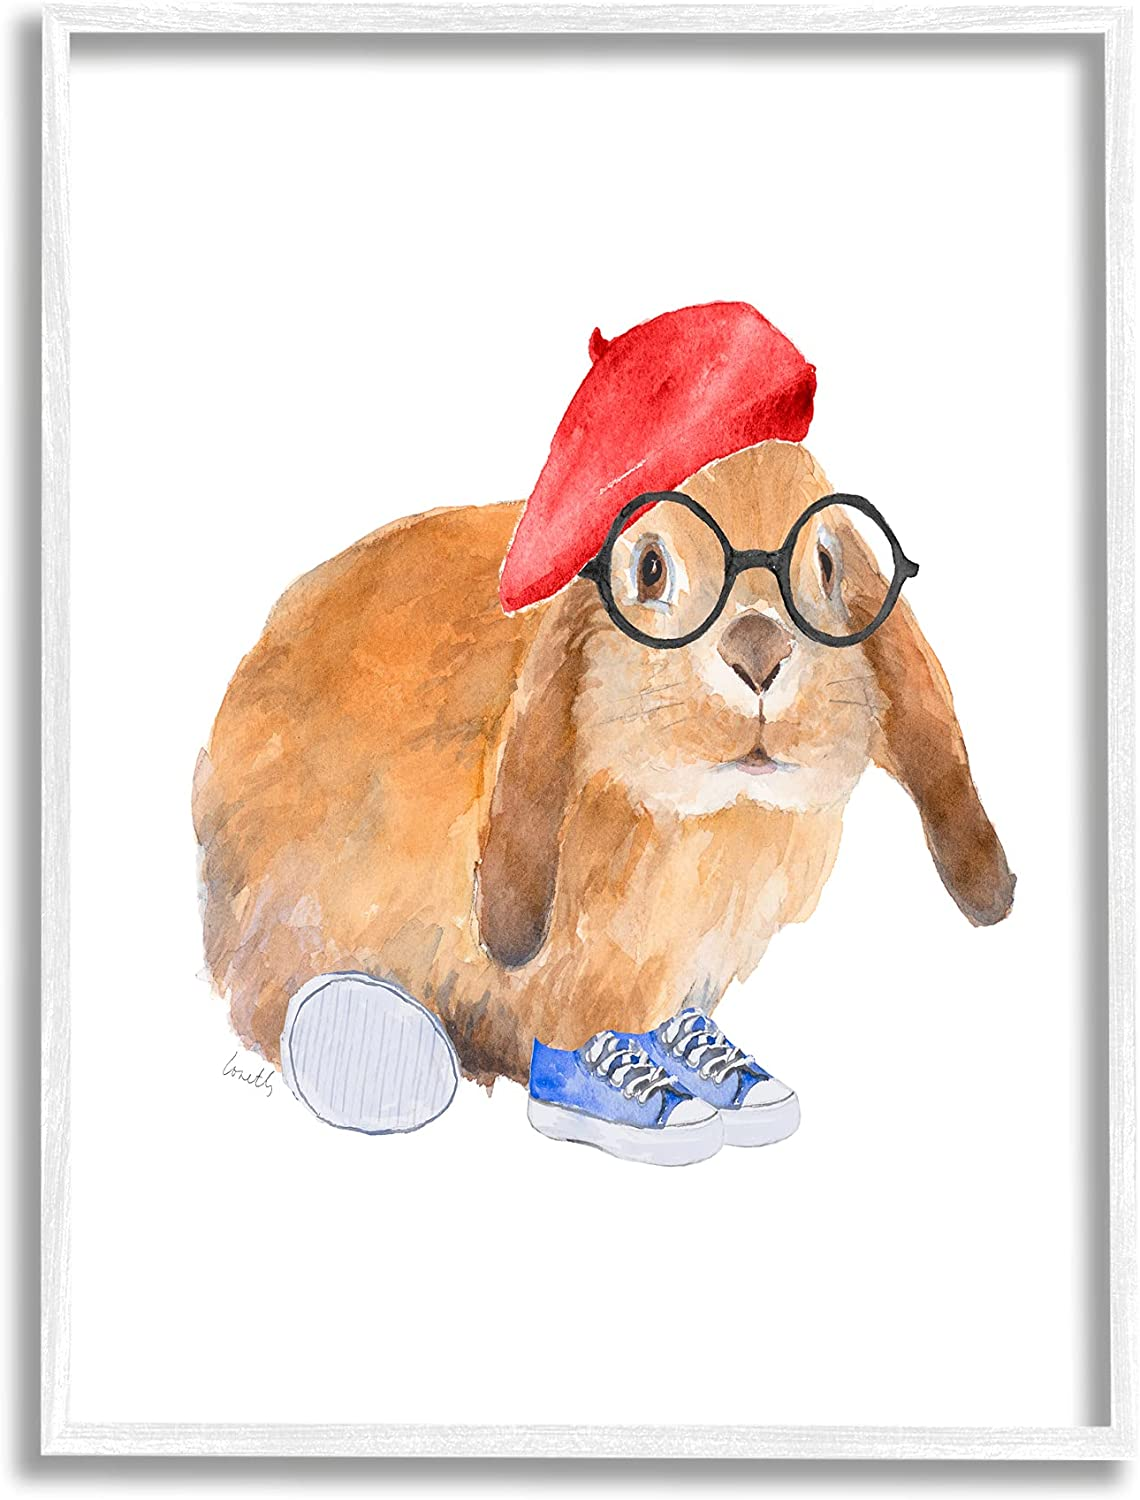 Stupell Industries Chic Bunny Rabbit Red Beret Hat Round Glasses, Designed by Lanie Loreth White Framed Wall Art, 24 x 30, Orange